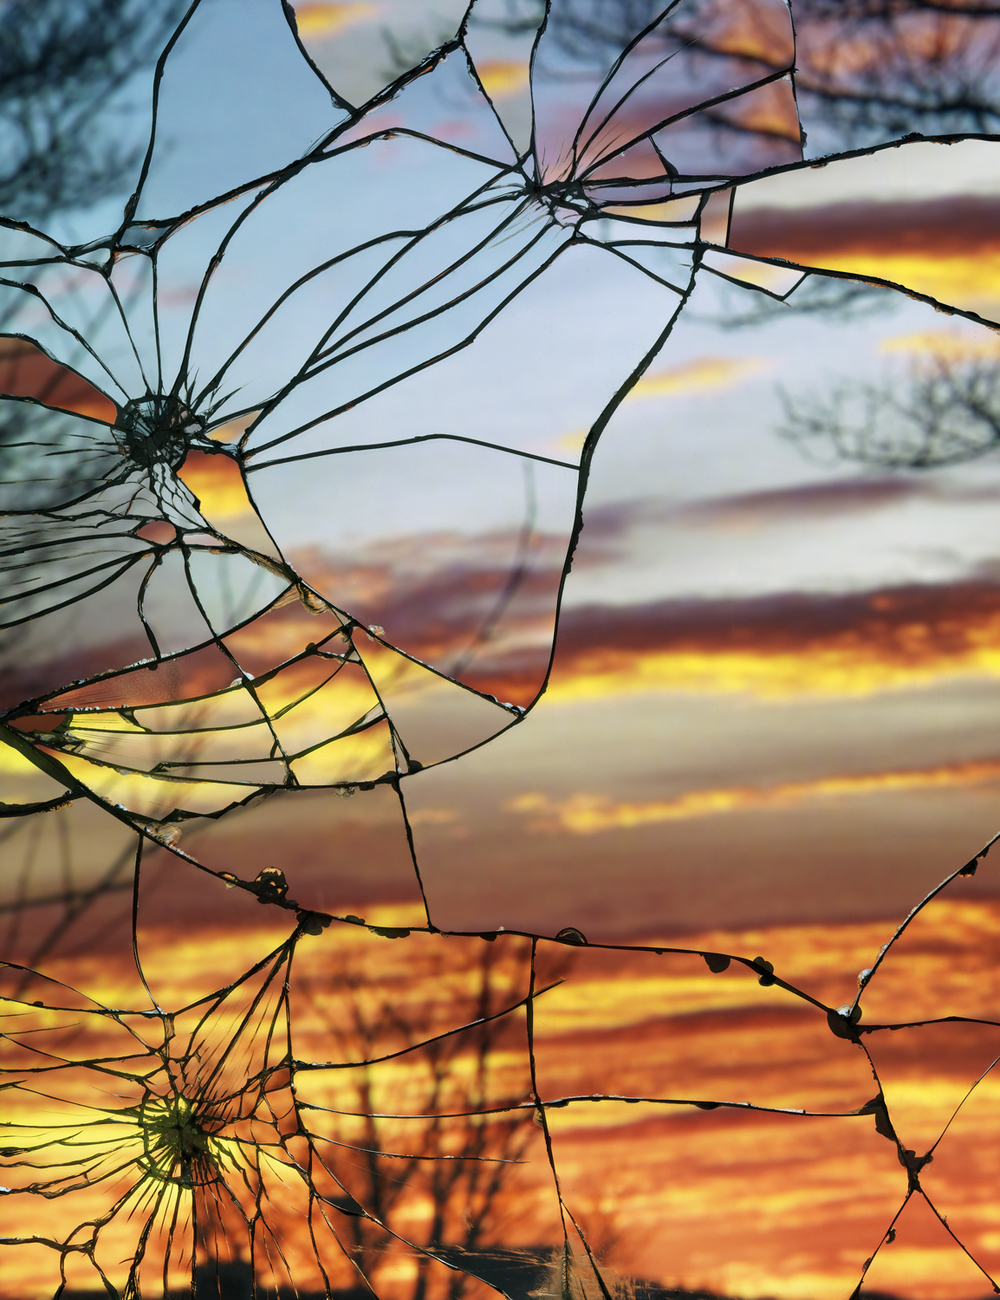 Broken Mirror_Evening Sky (Anscochrome)2.jpg